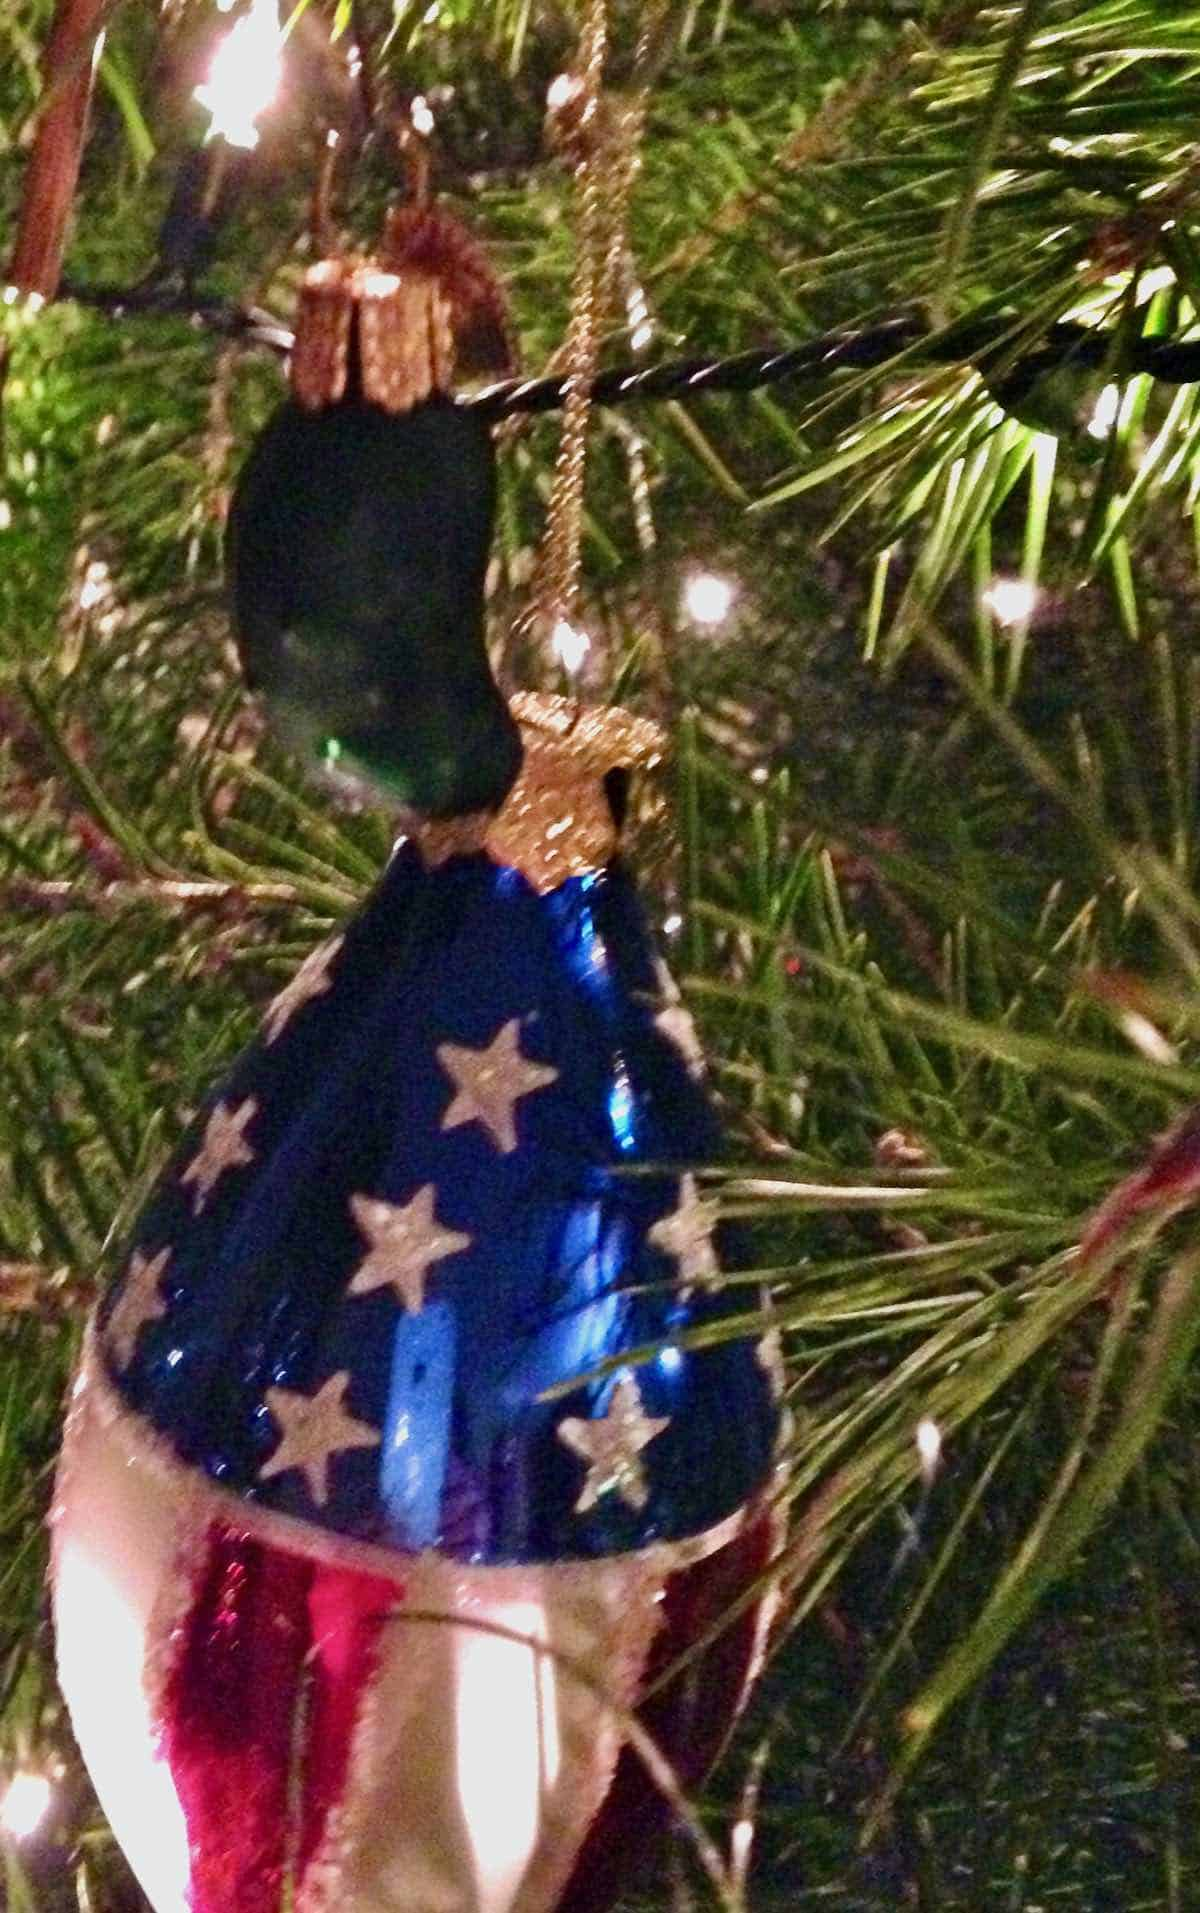 pickle and American flag xmas ornaments on tree